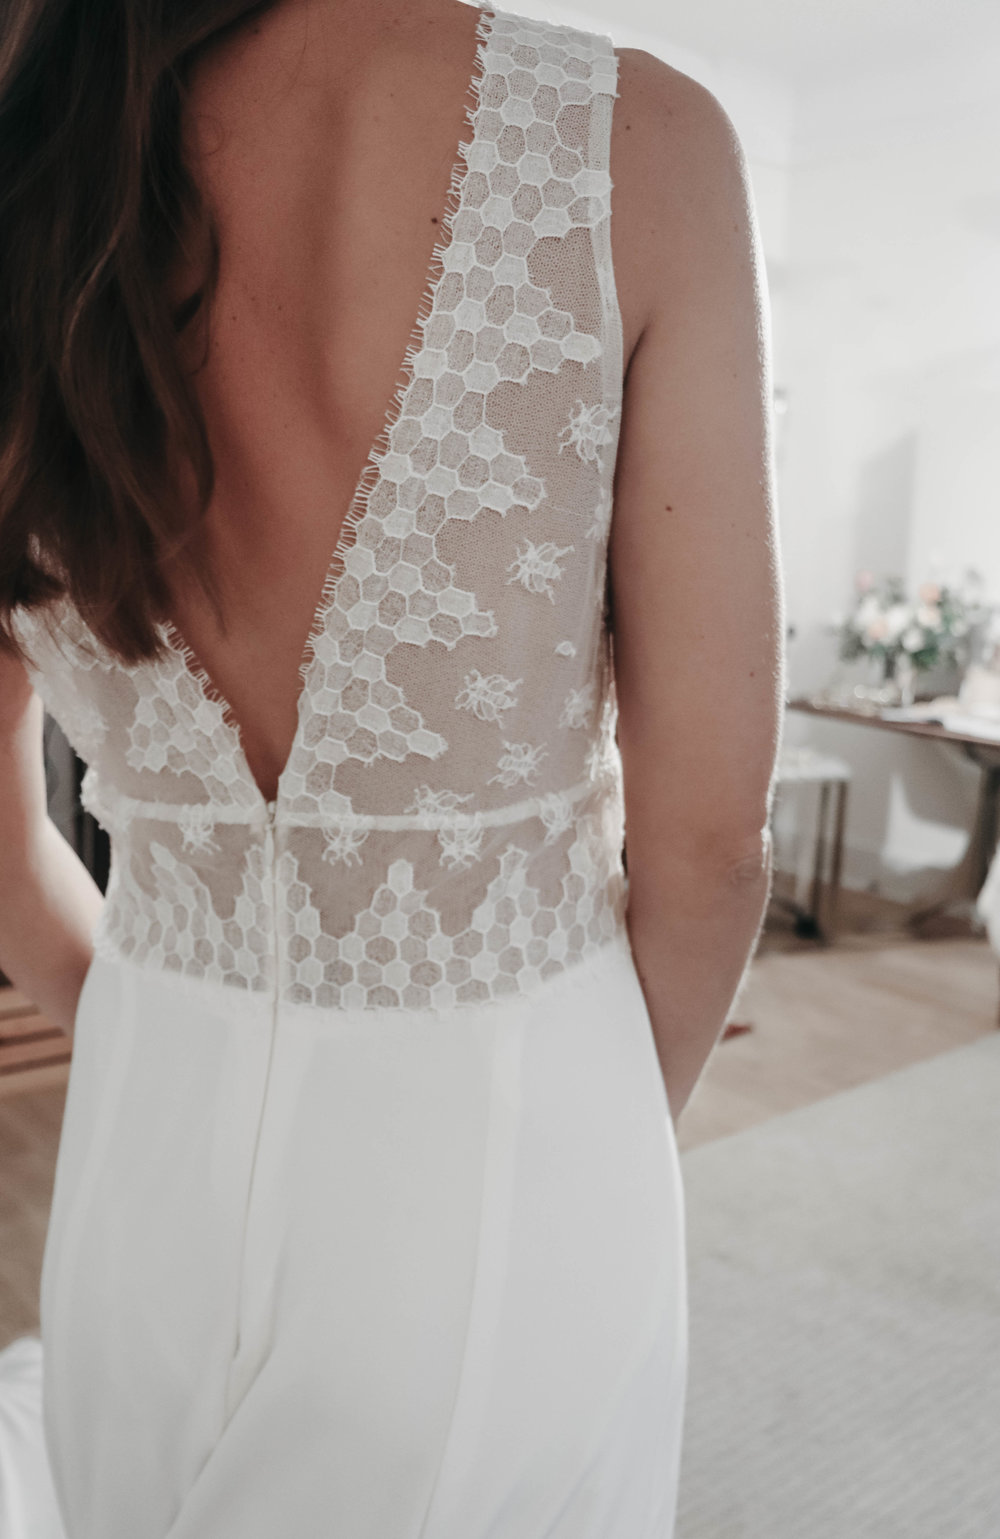 Bees Lace Wedding Dress.jpg